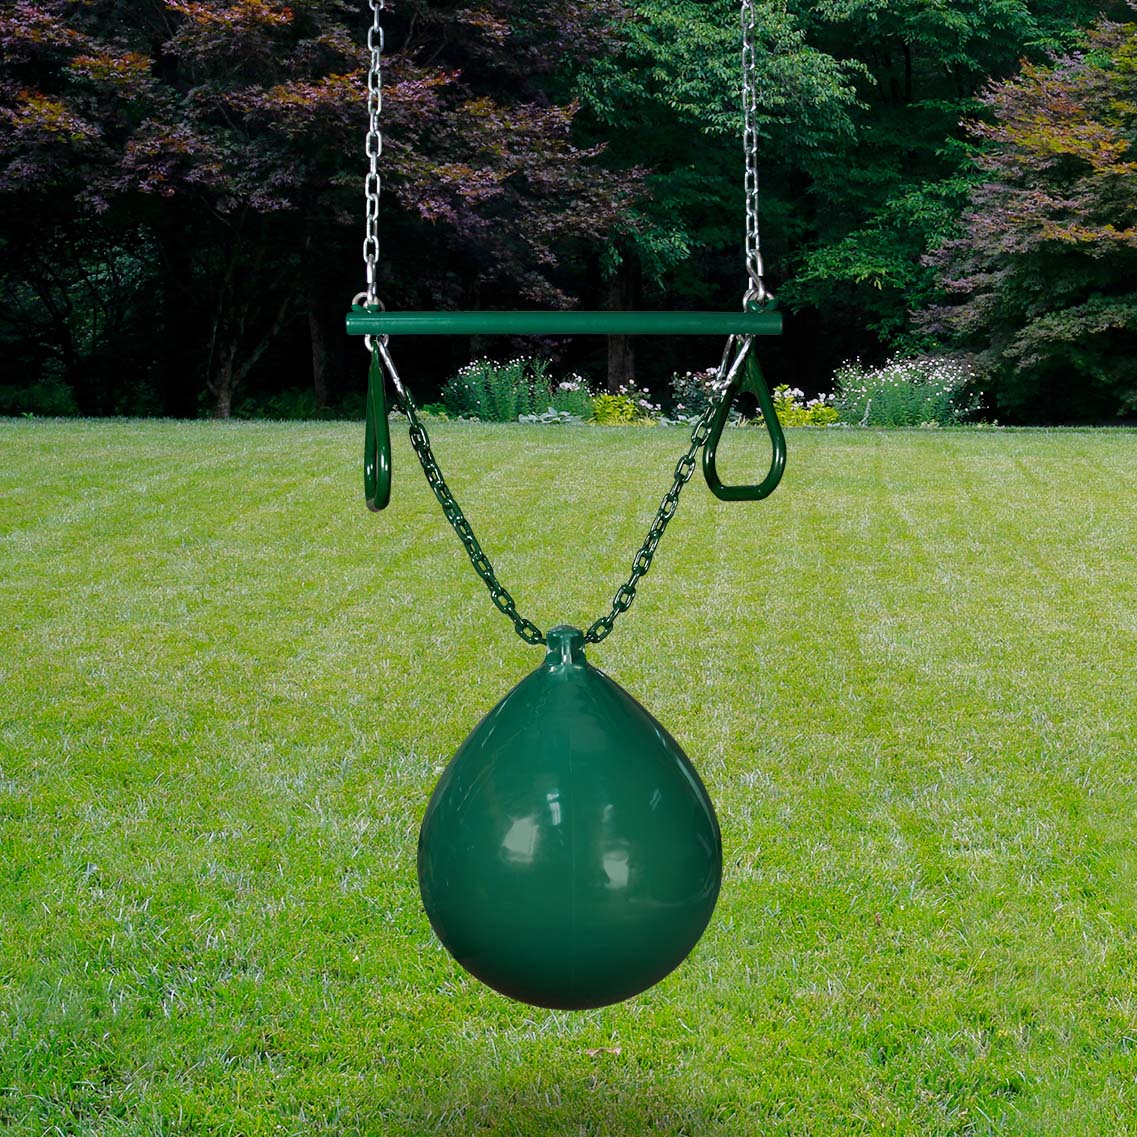 Gorilla-Playsets-Bouy-Ball-W-Trapeze-Green